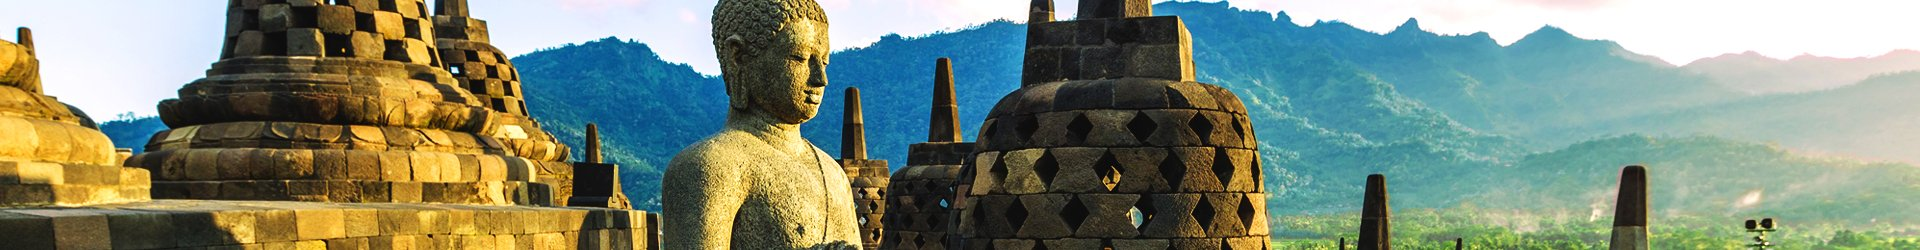 Borobudur op Java, Indonesië